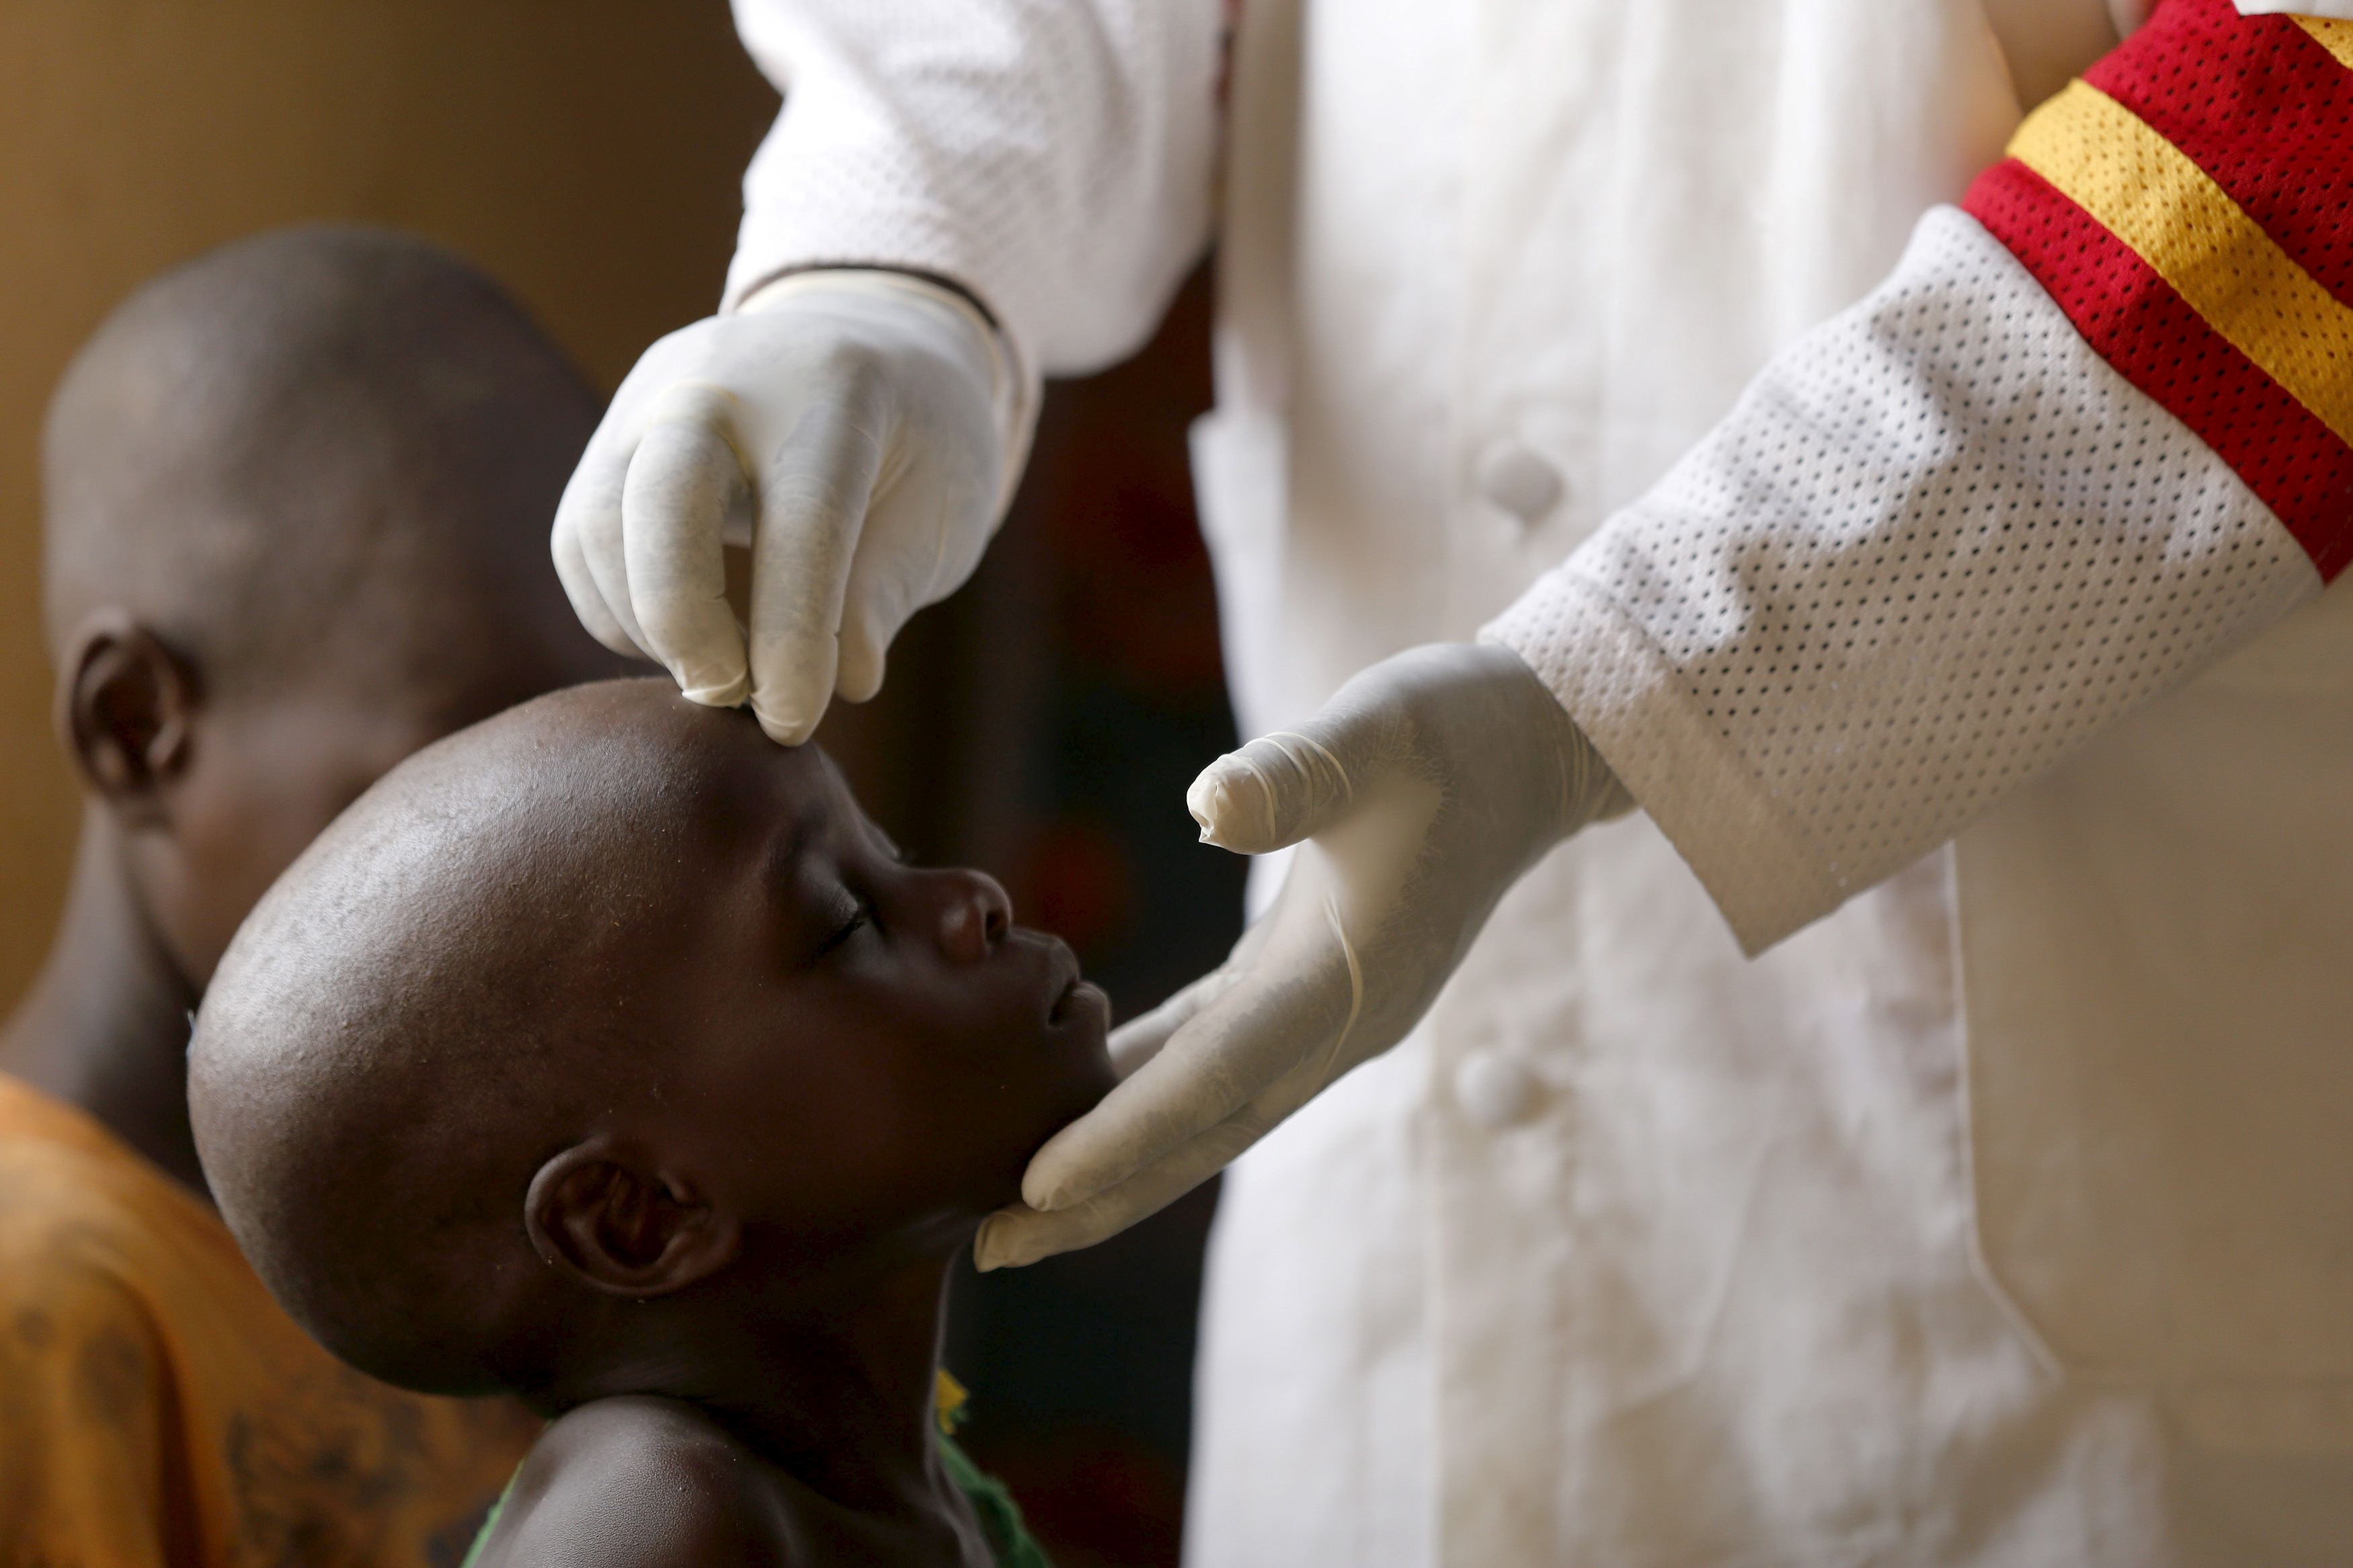 A child rescued from Boko Haram in Sambisa forest is treated at a clinic at the Internally Displaced People's camp in Yola, Nigeria, on May 3, 2015. Photo by Afolabi Sotunde/Reuters